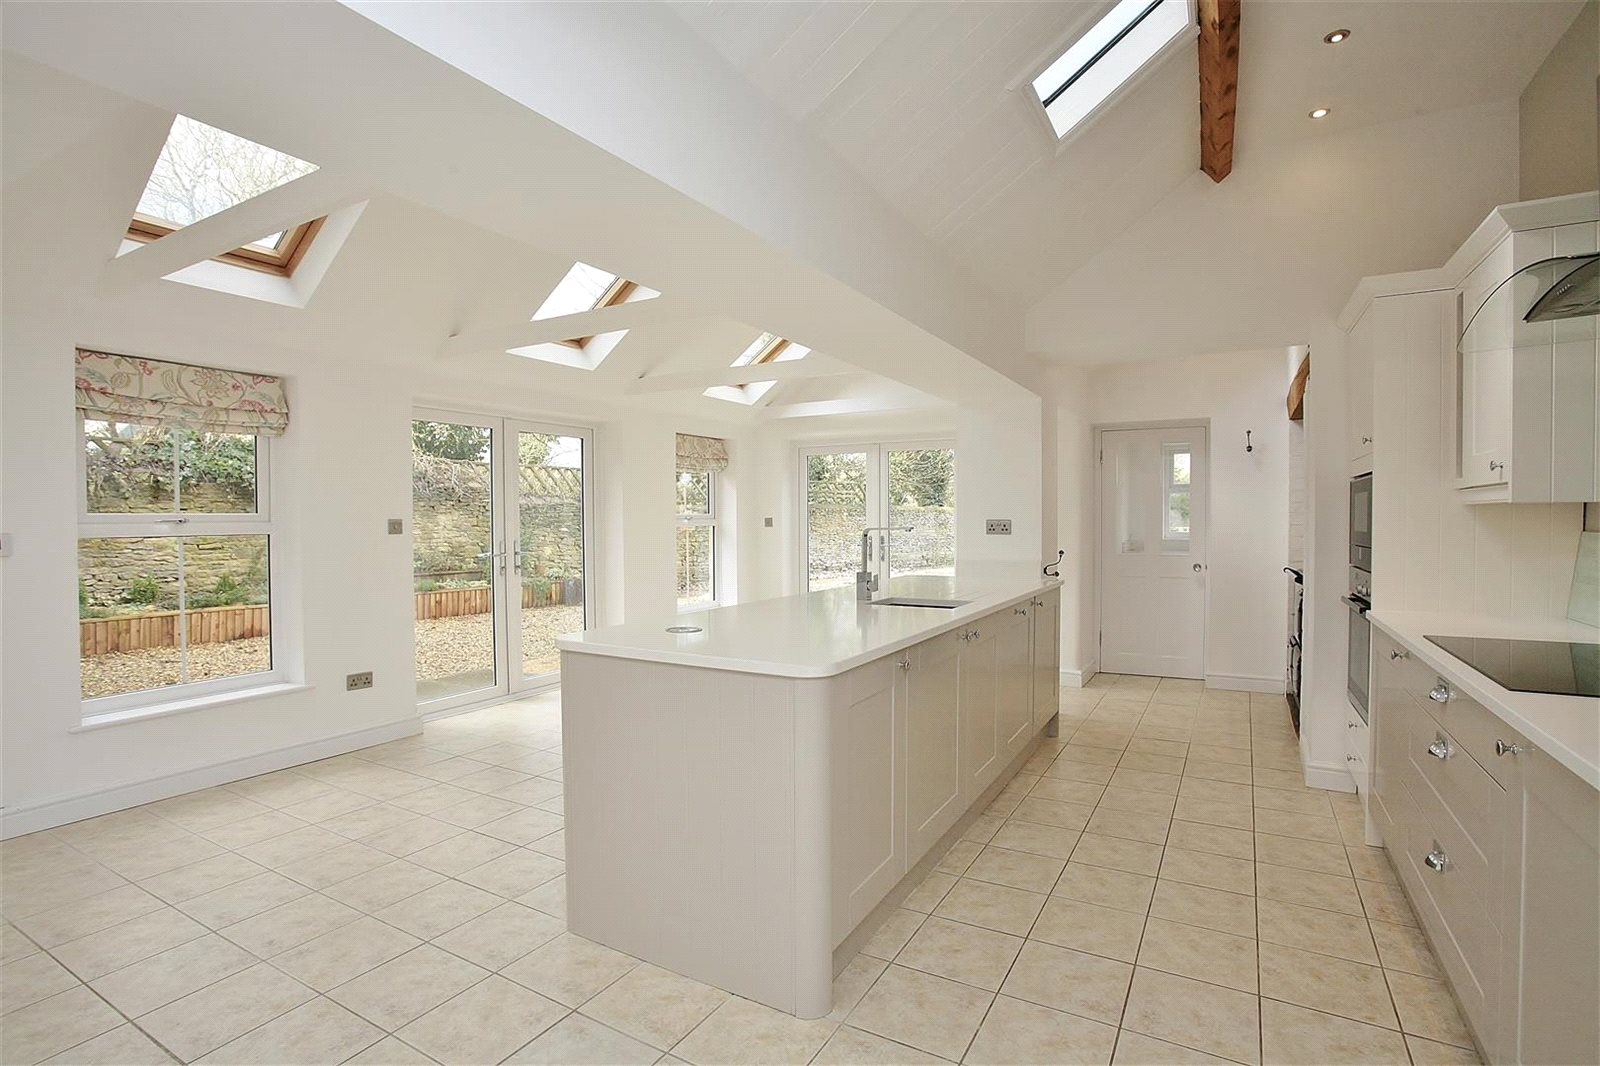 Additional photo for property listing at Bampton Road, Clanfield, Oxfordshire, OX18 Clanfield, Αγγλια